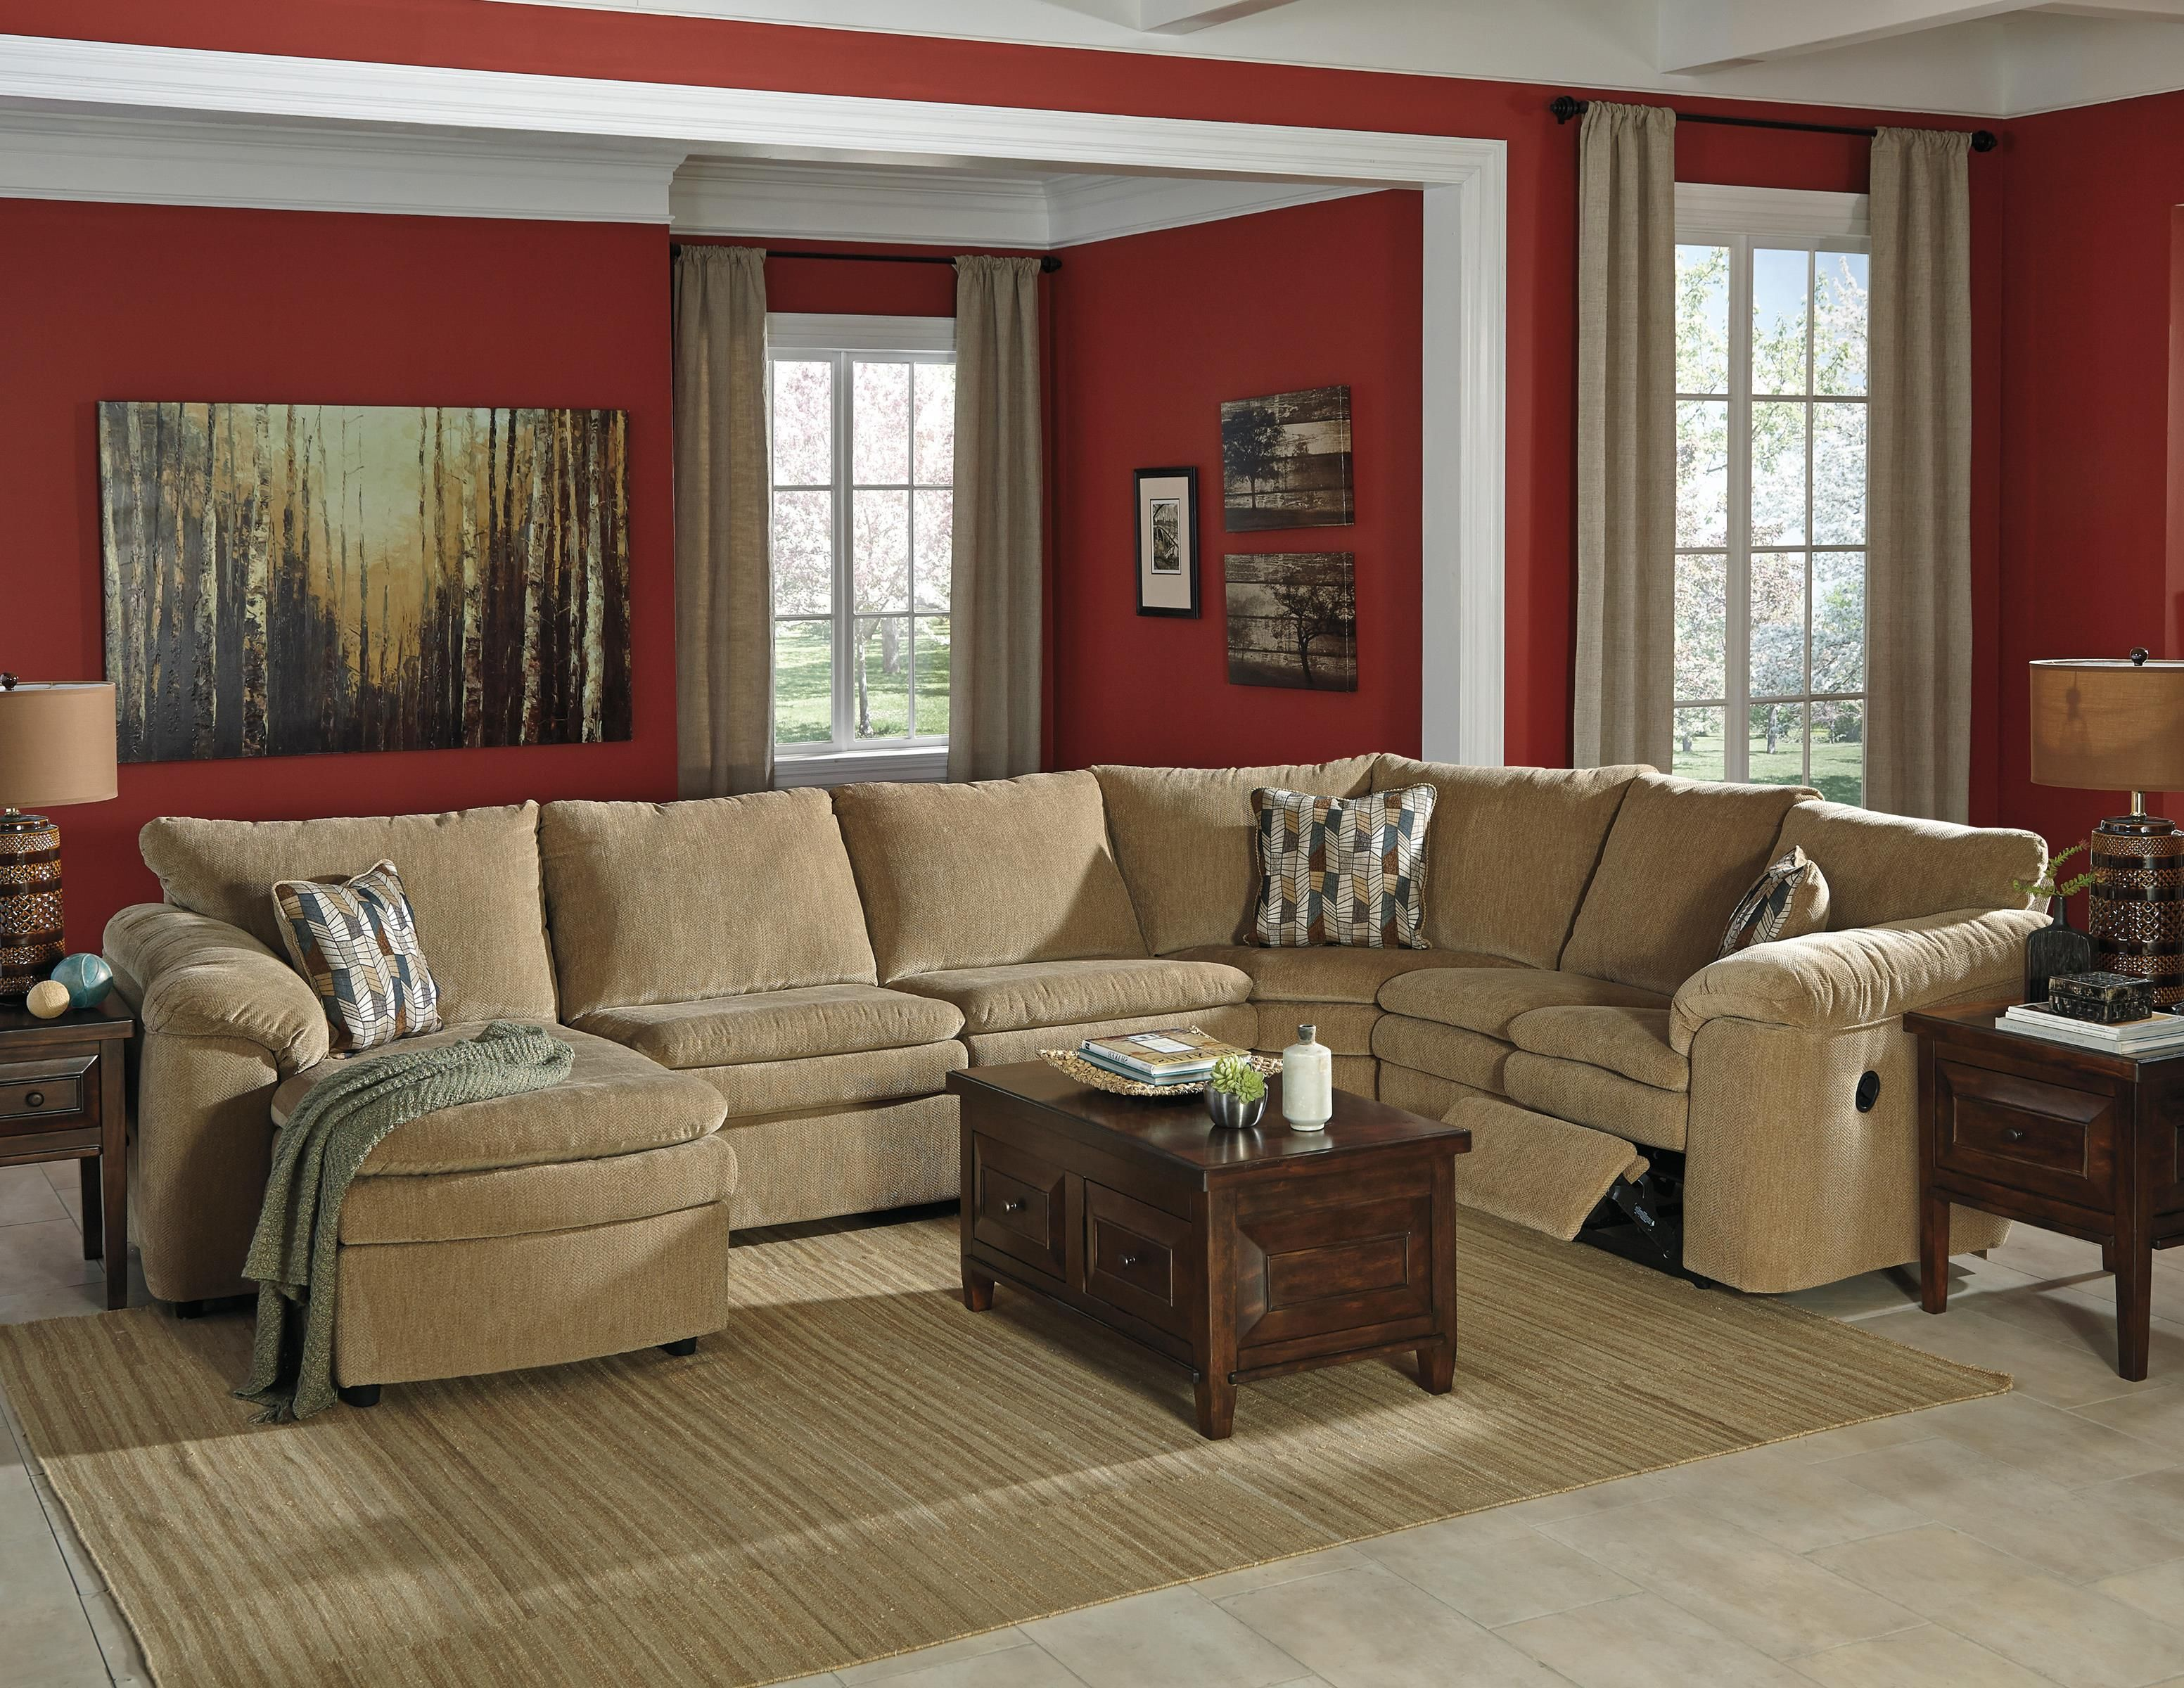 Casual Contemporary 4-Piece Reclining Sectional with Left Chaise : exhilaration sectional - Sectionals, Sofas & Couches